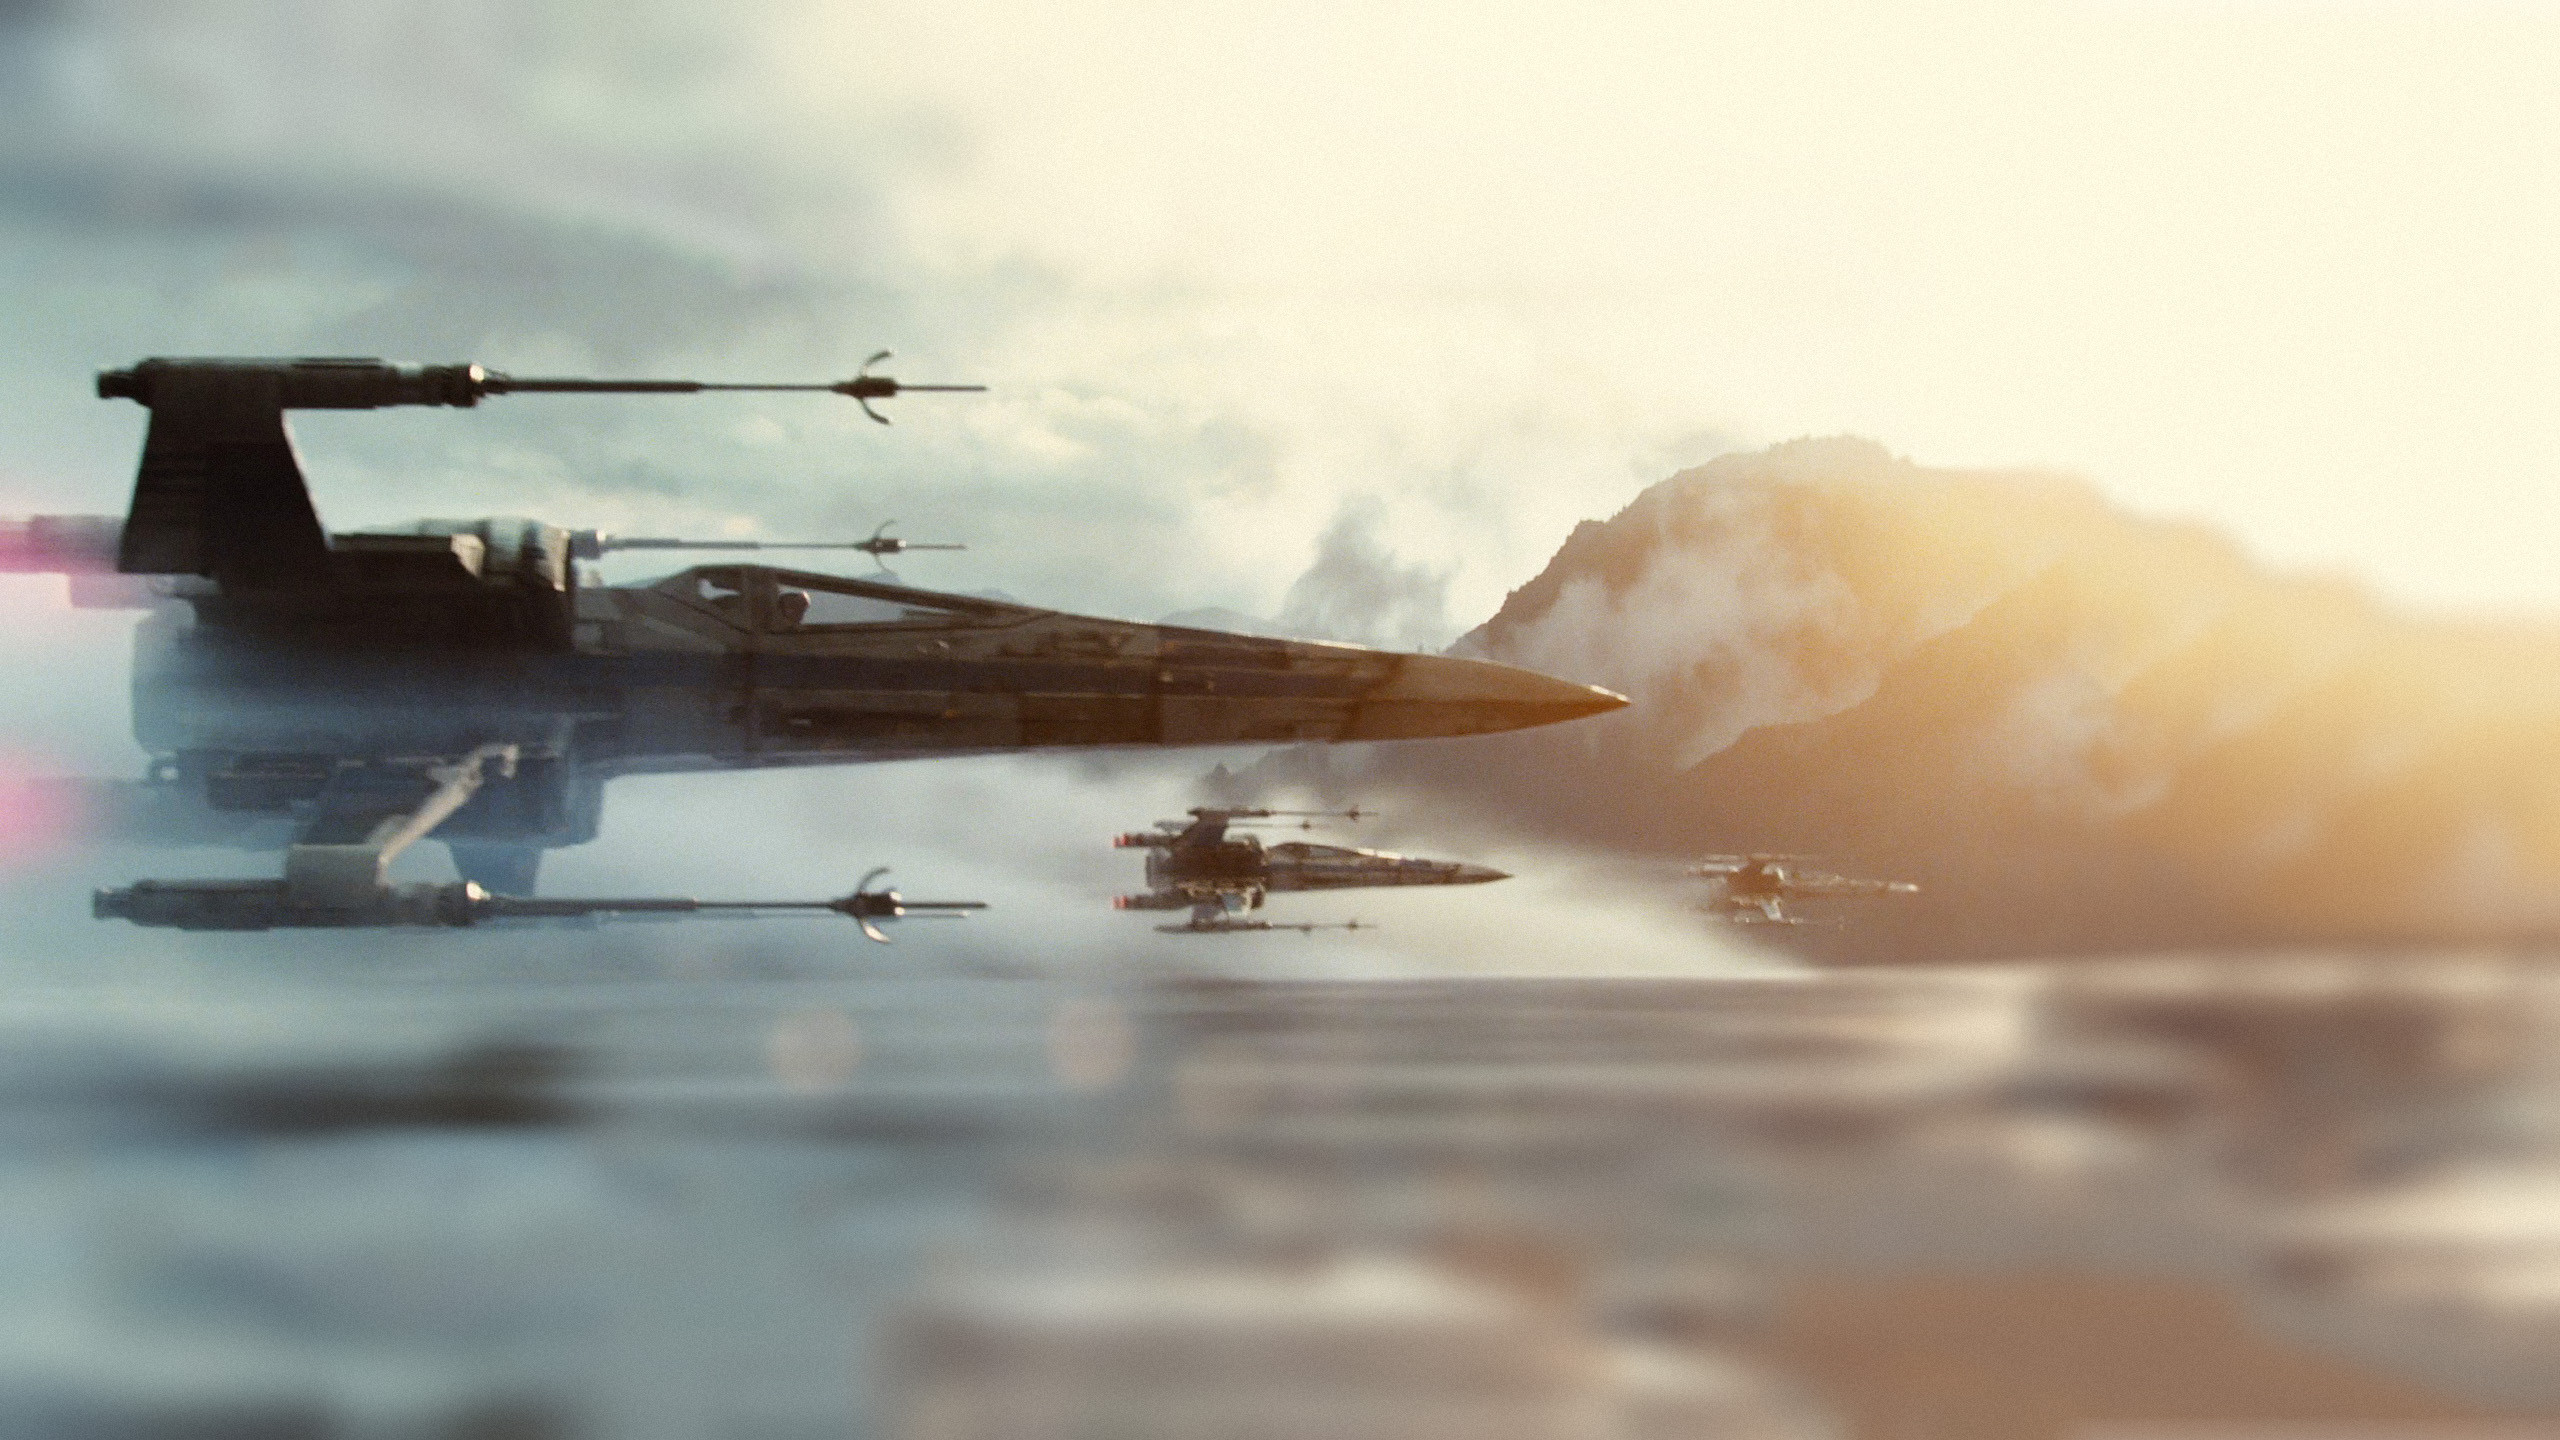 Anyone Want A New Desktop Wallpaper Star Wars 7 X Wings 2927291 Hd Wallpaper Backgrounds Download